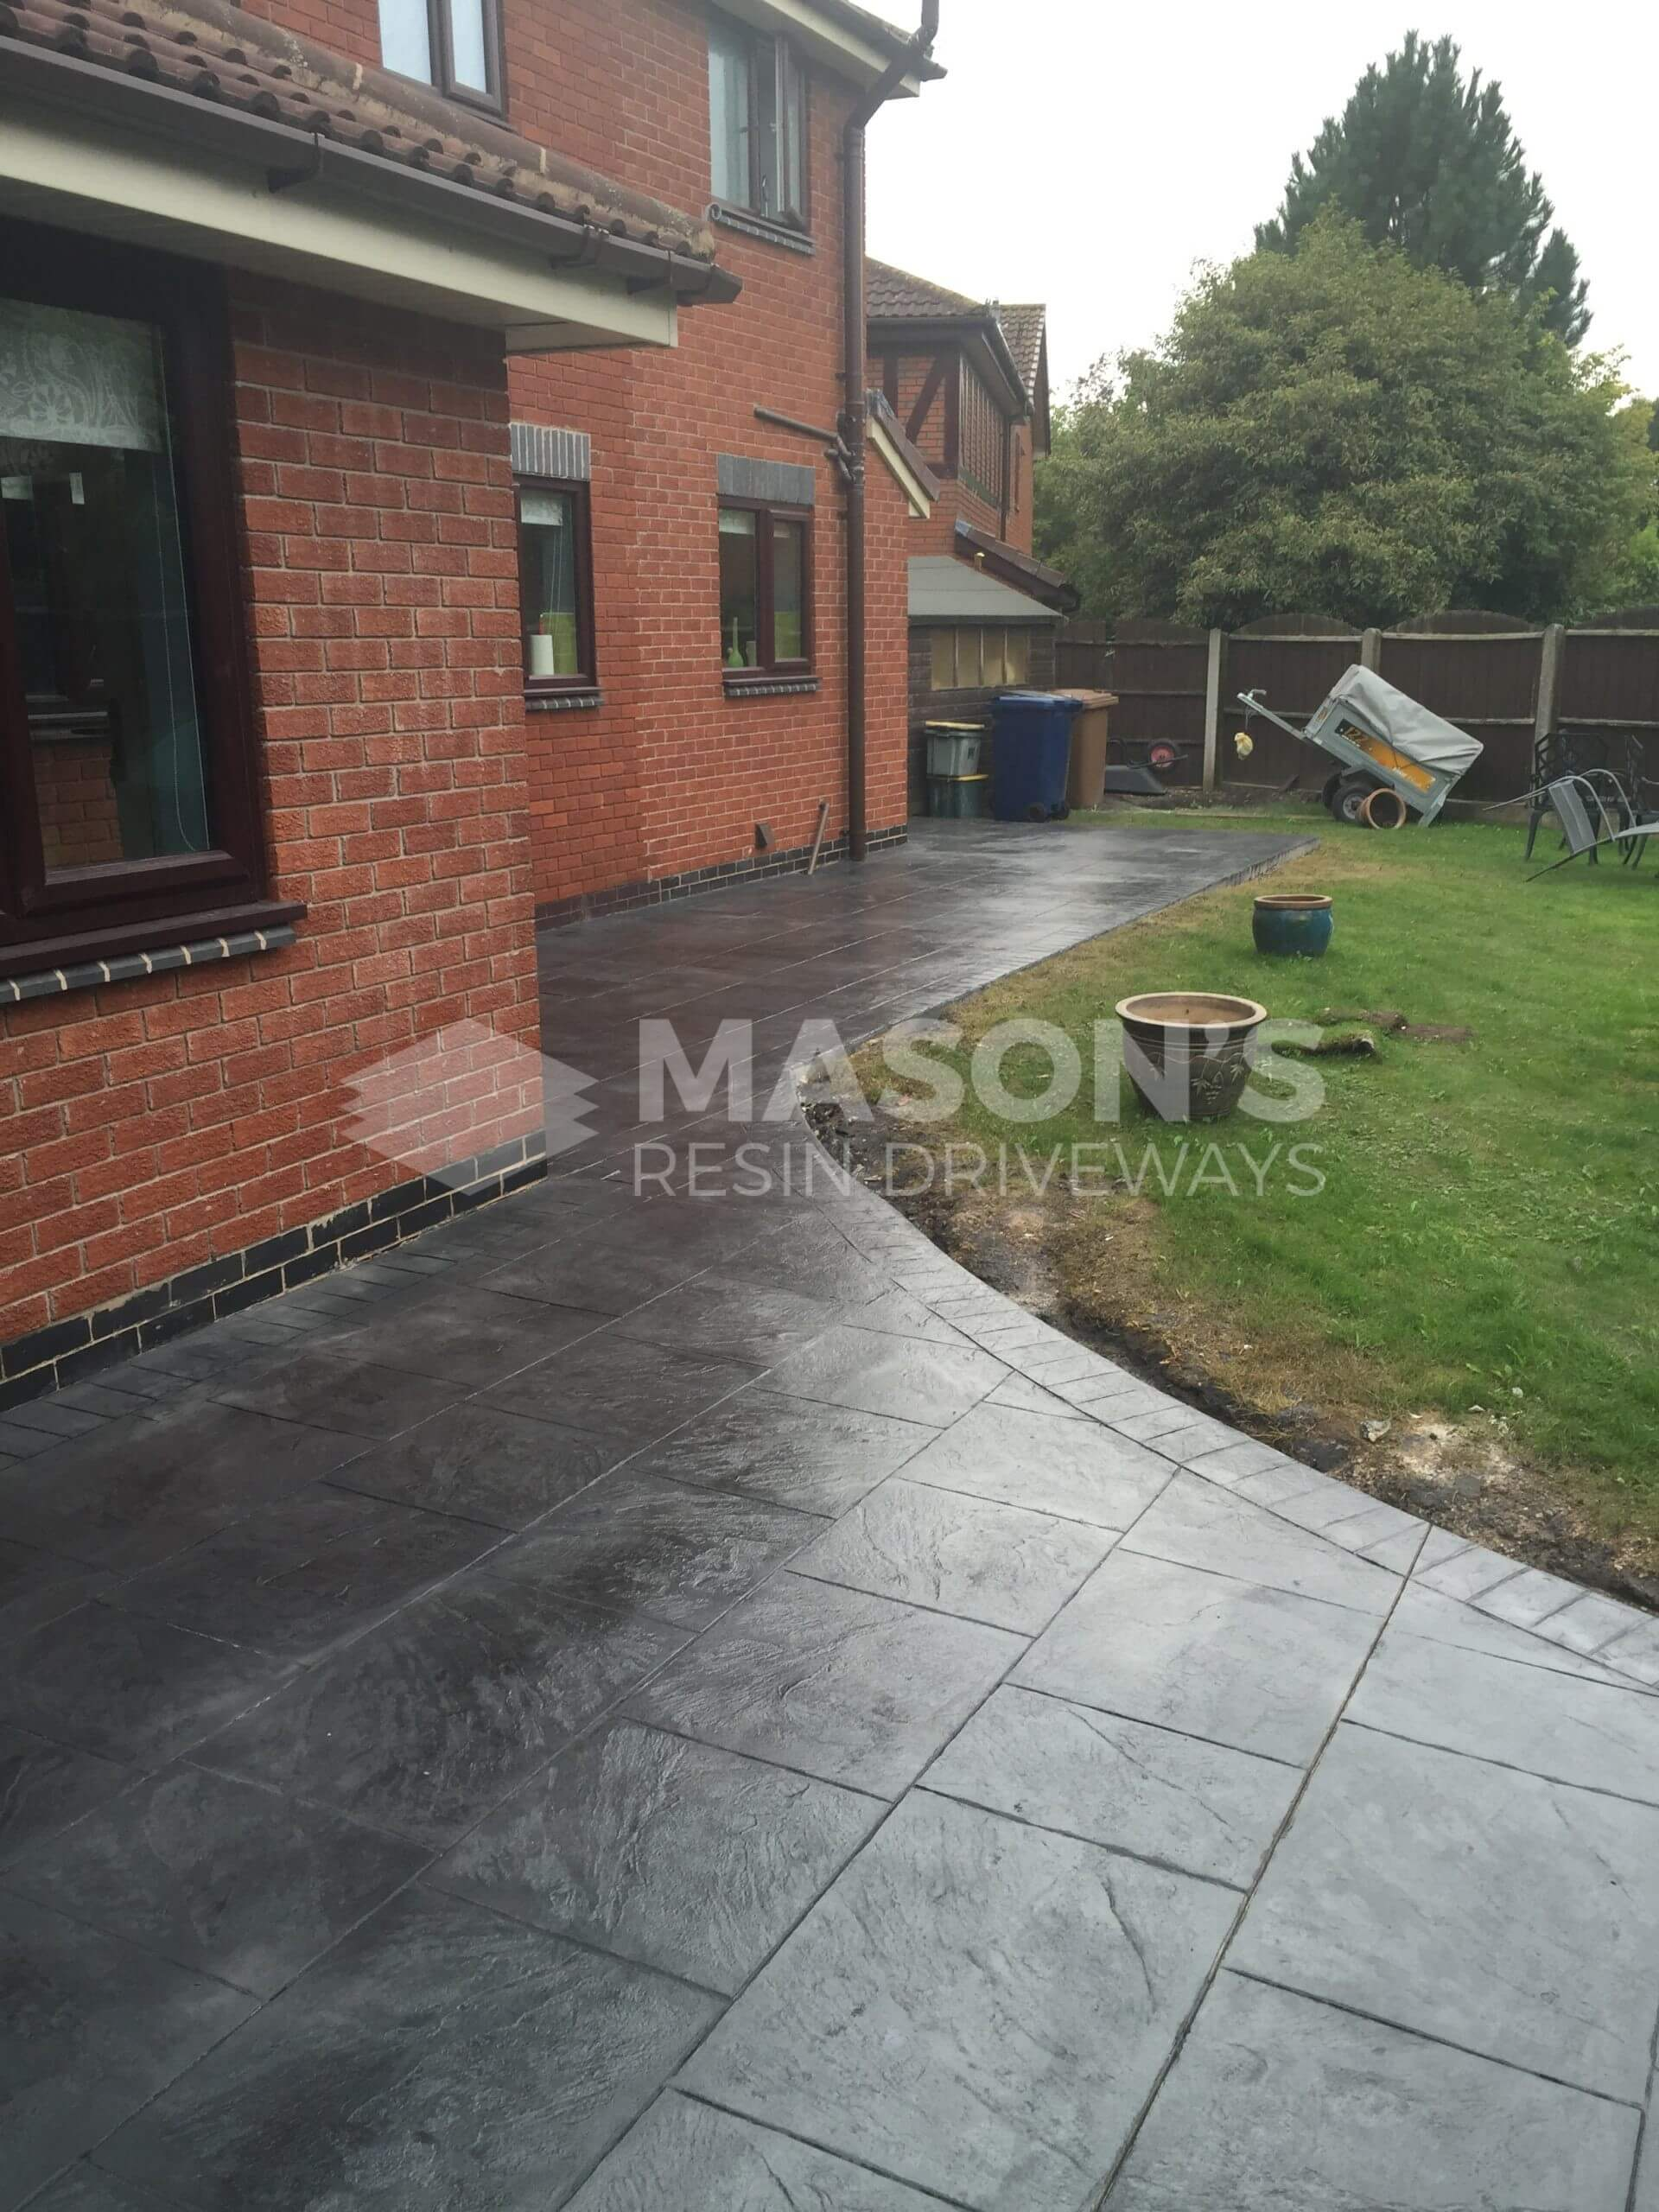 back garden of pattern imprinted concrete driveway, preston, lancashire